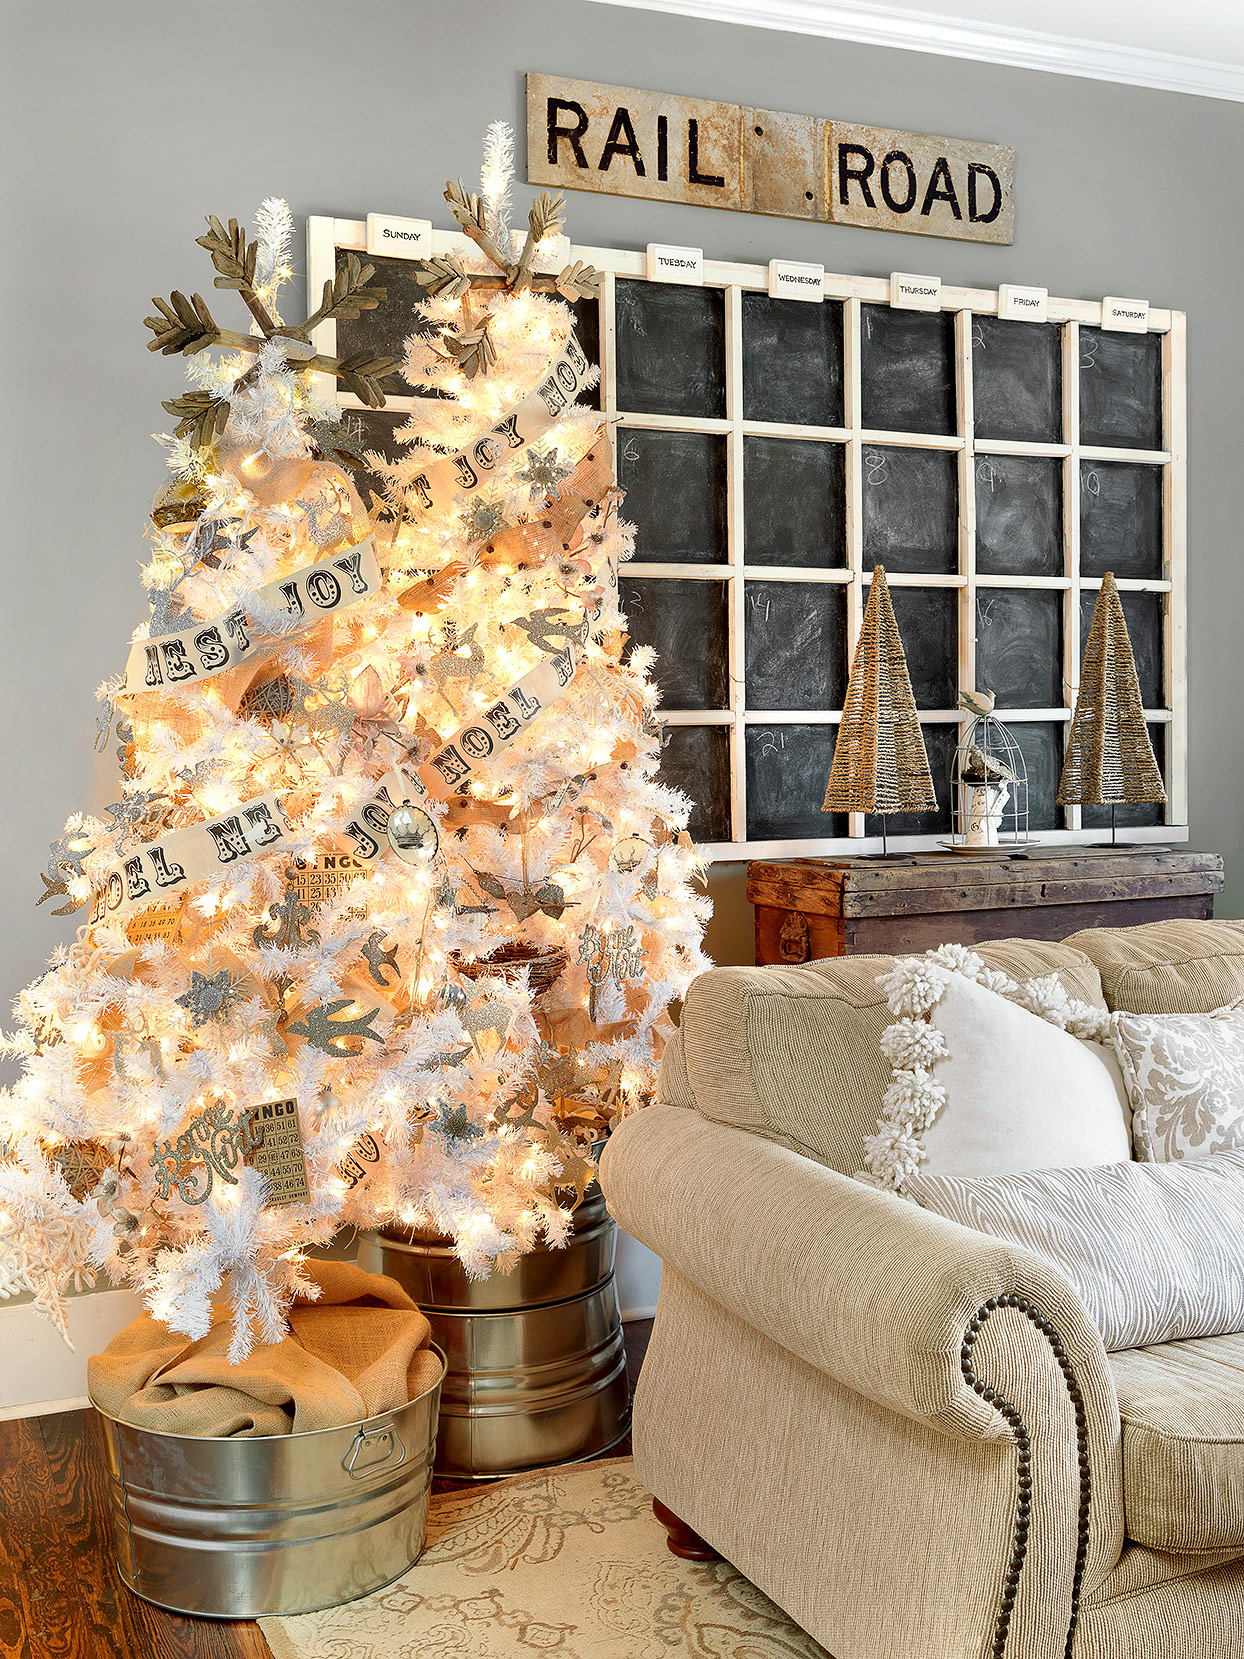 large chalkboard calendar in rustic living room near brightly lit white Christmas trees